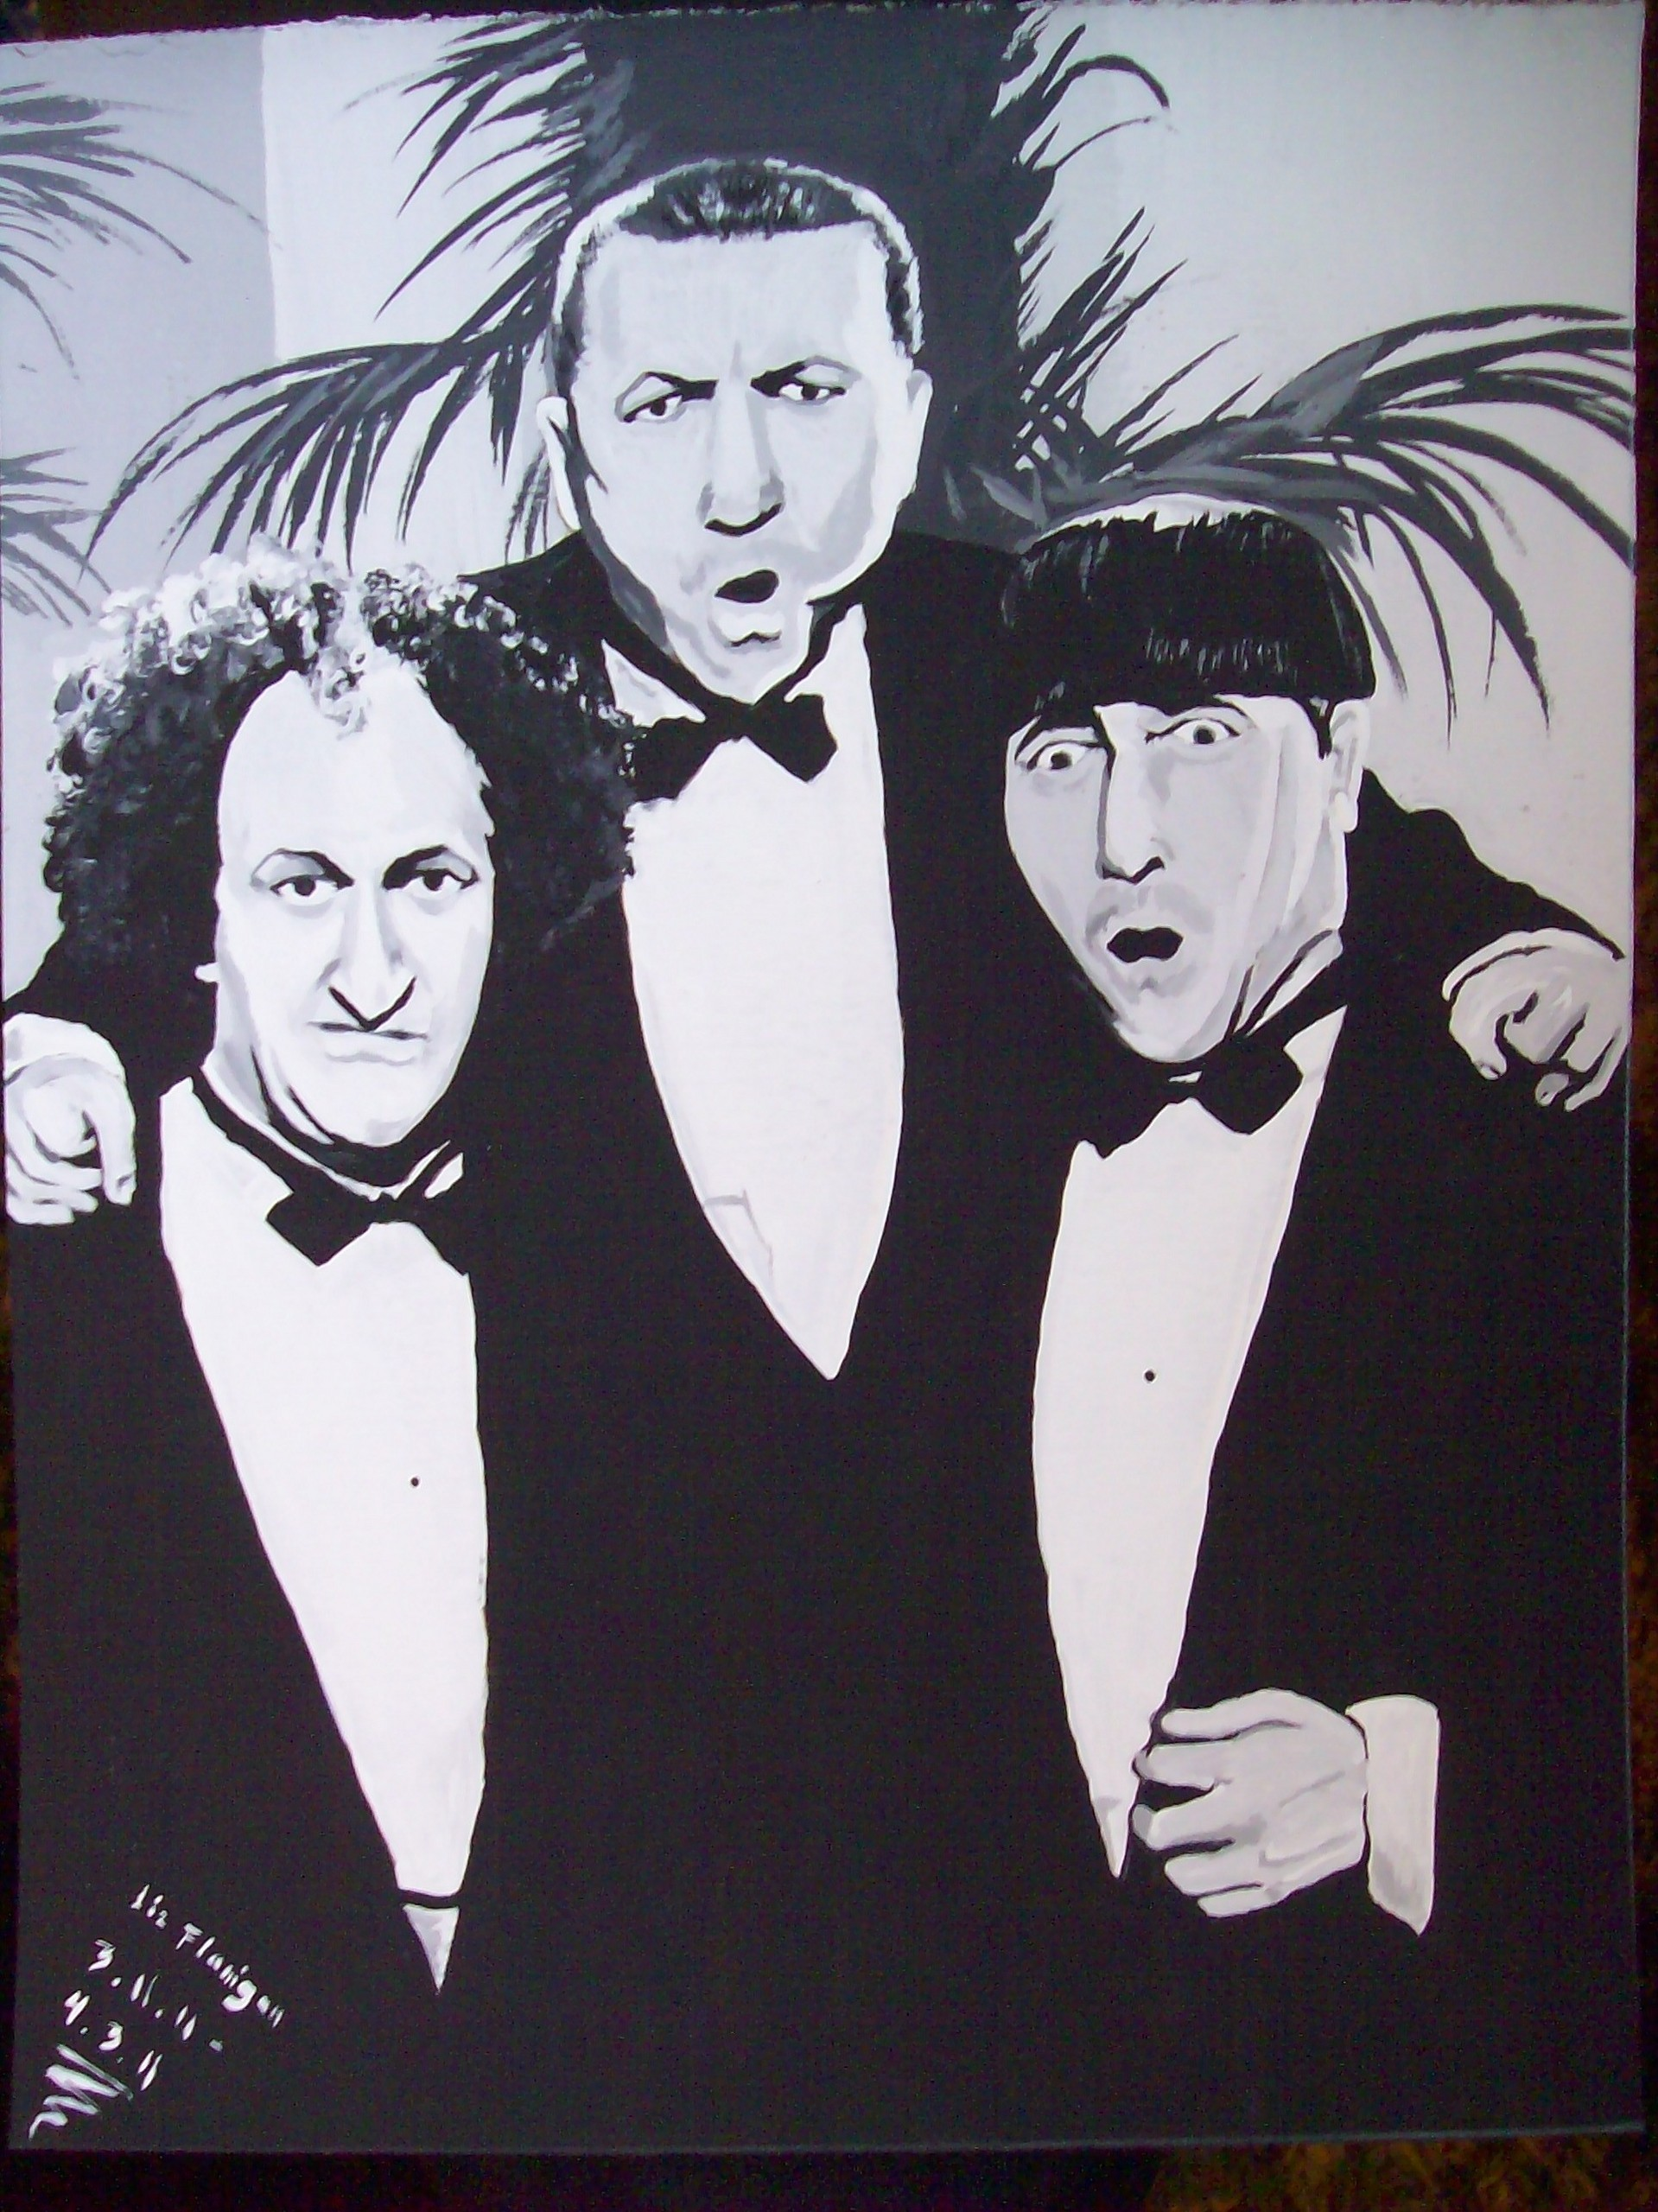 three stooges images three stooges artwork hd wallpaper and